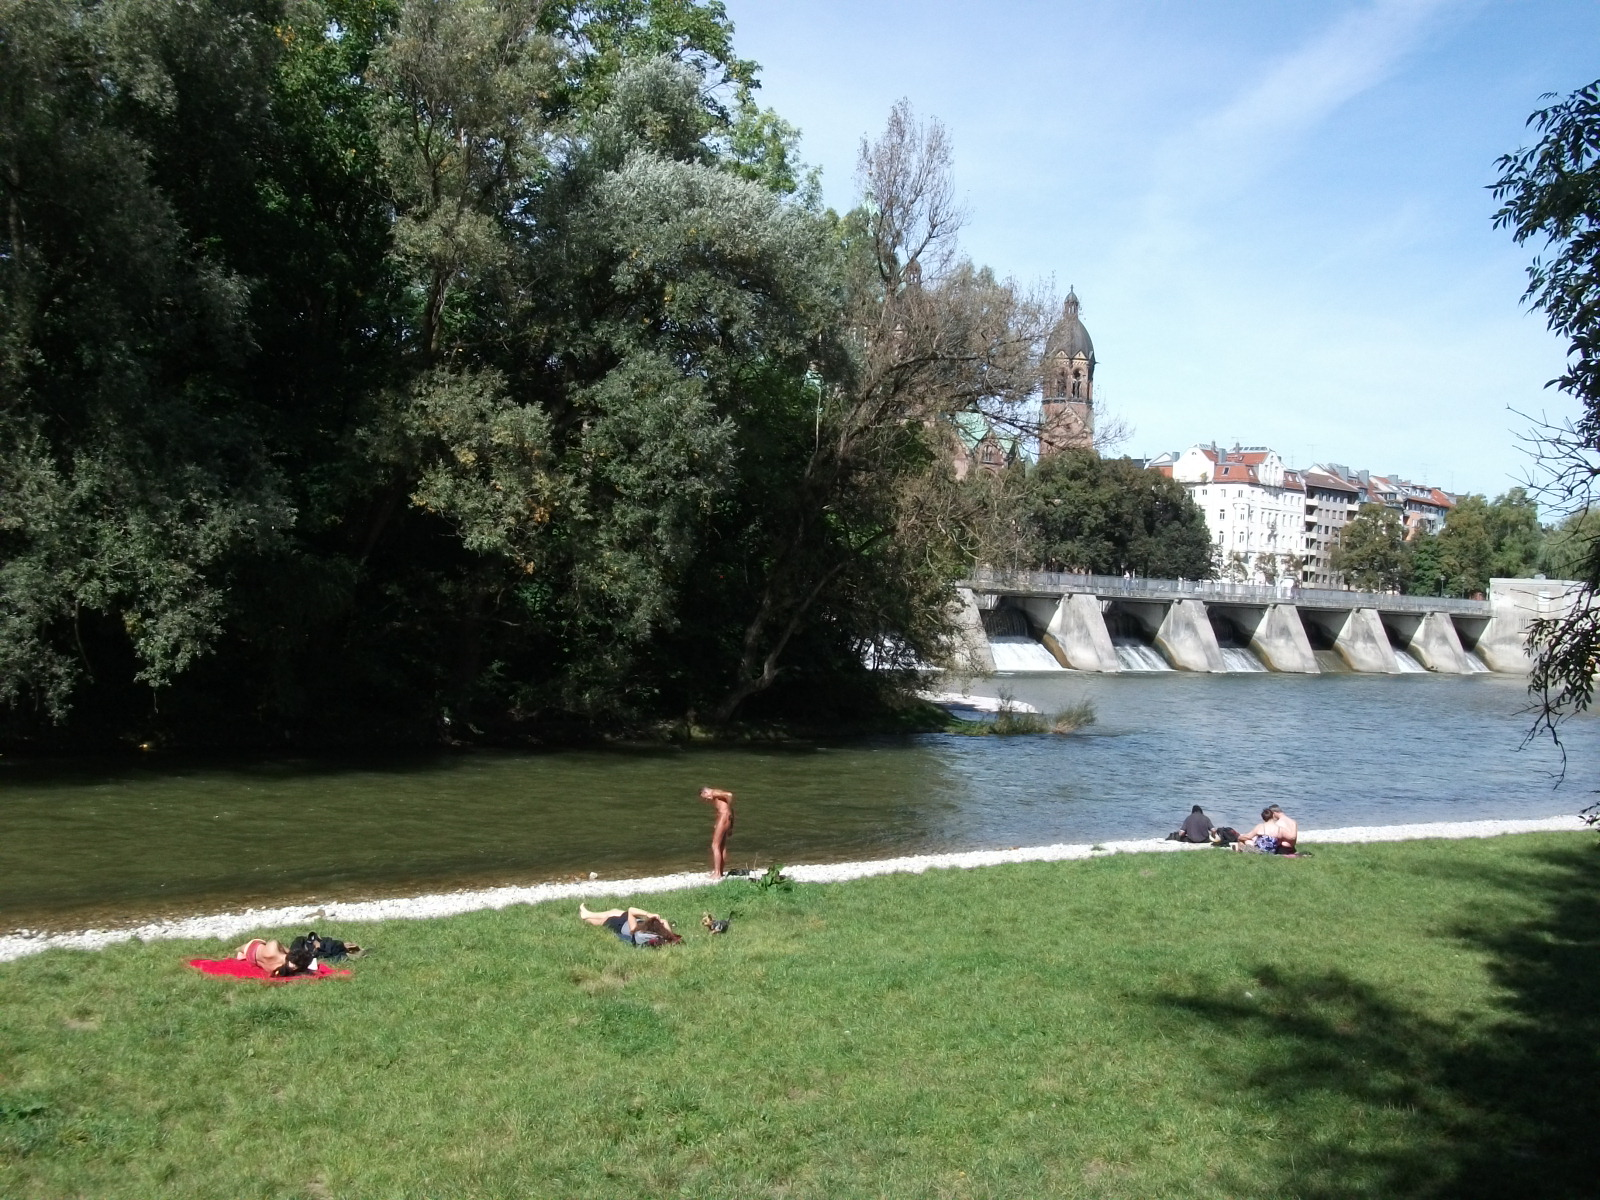 A Londoner from Afar Goes to Munich1 - Isar River